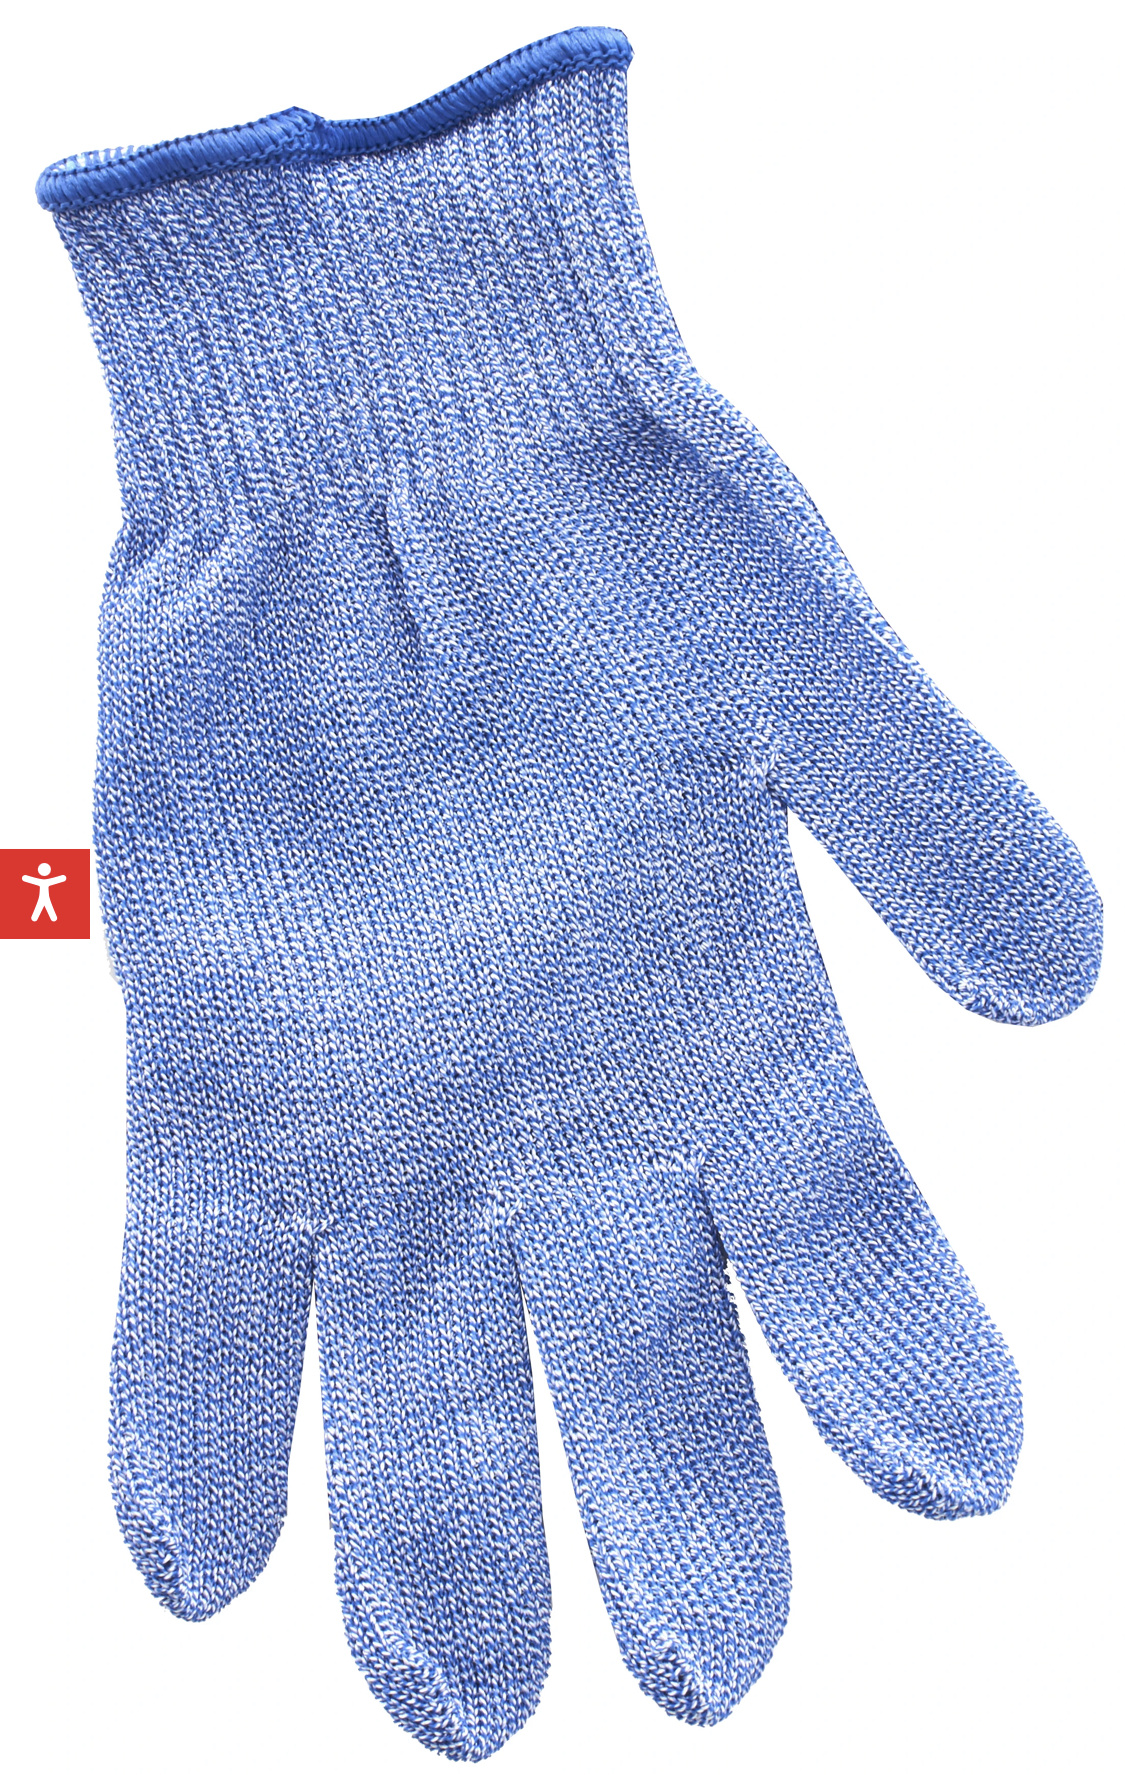 Wusthof Cut Resistant Glove Large